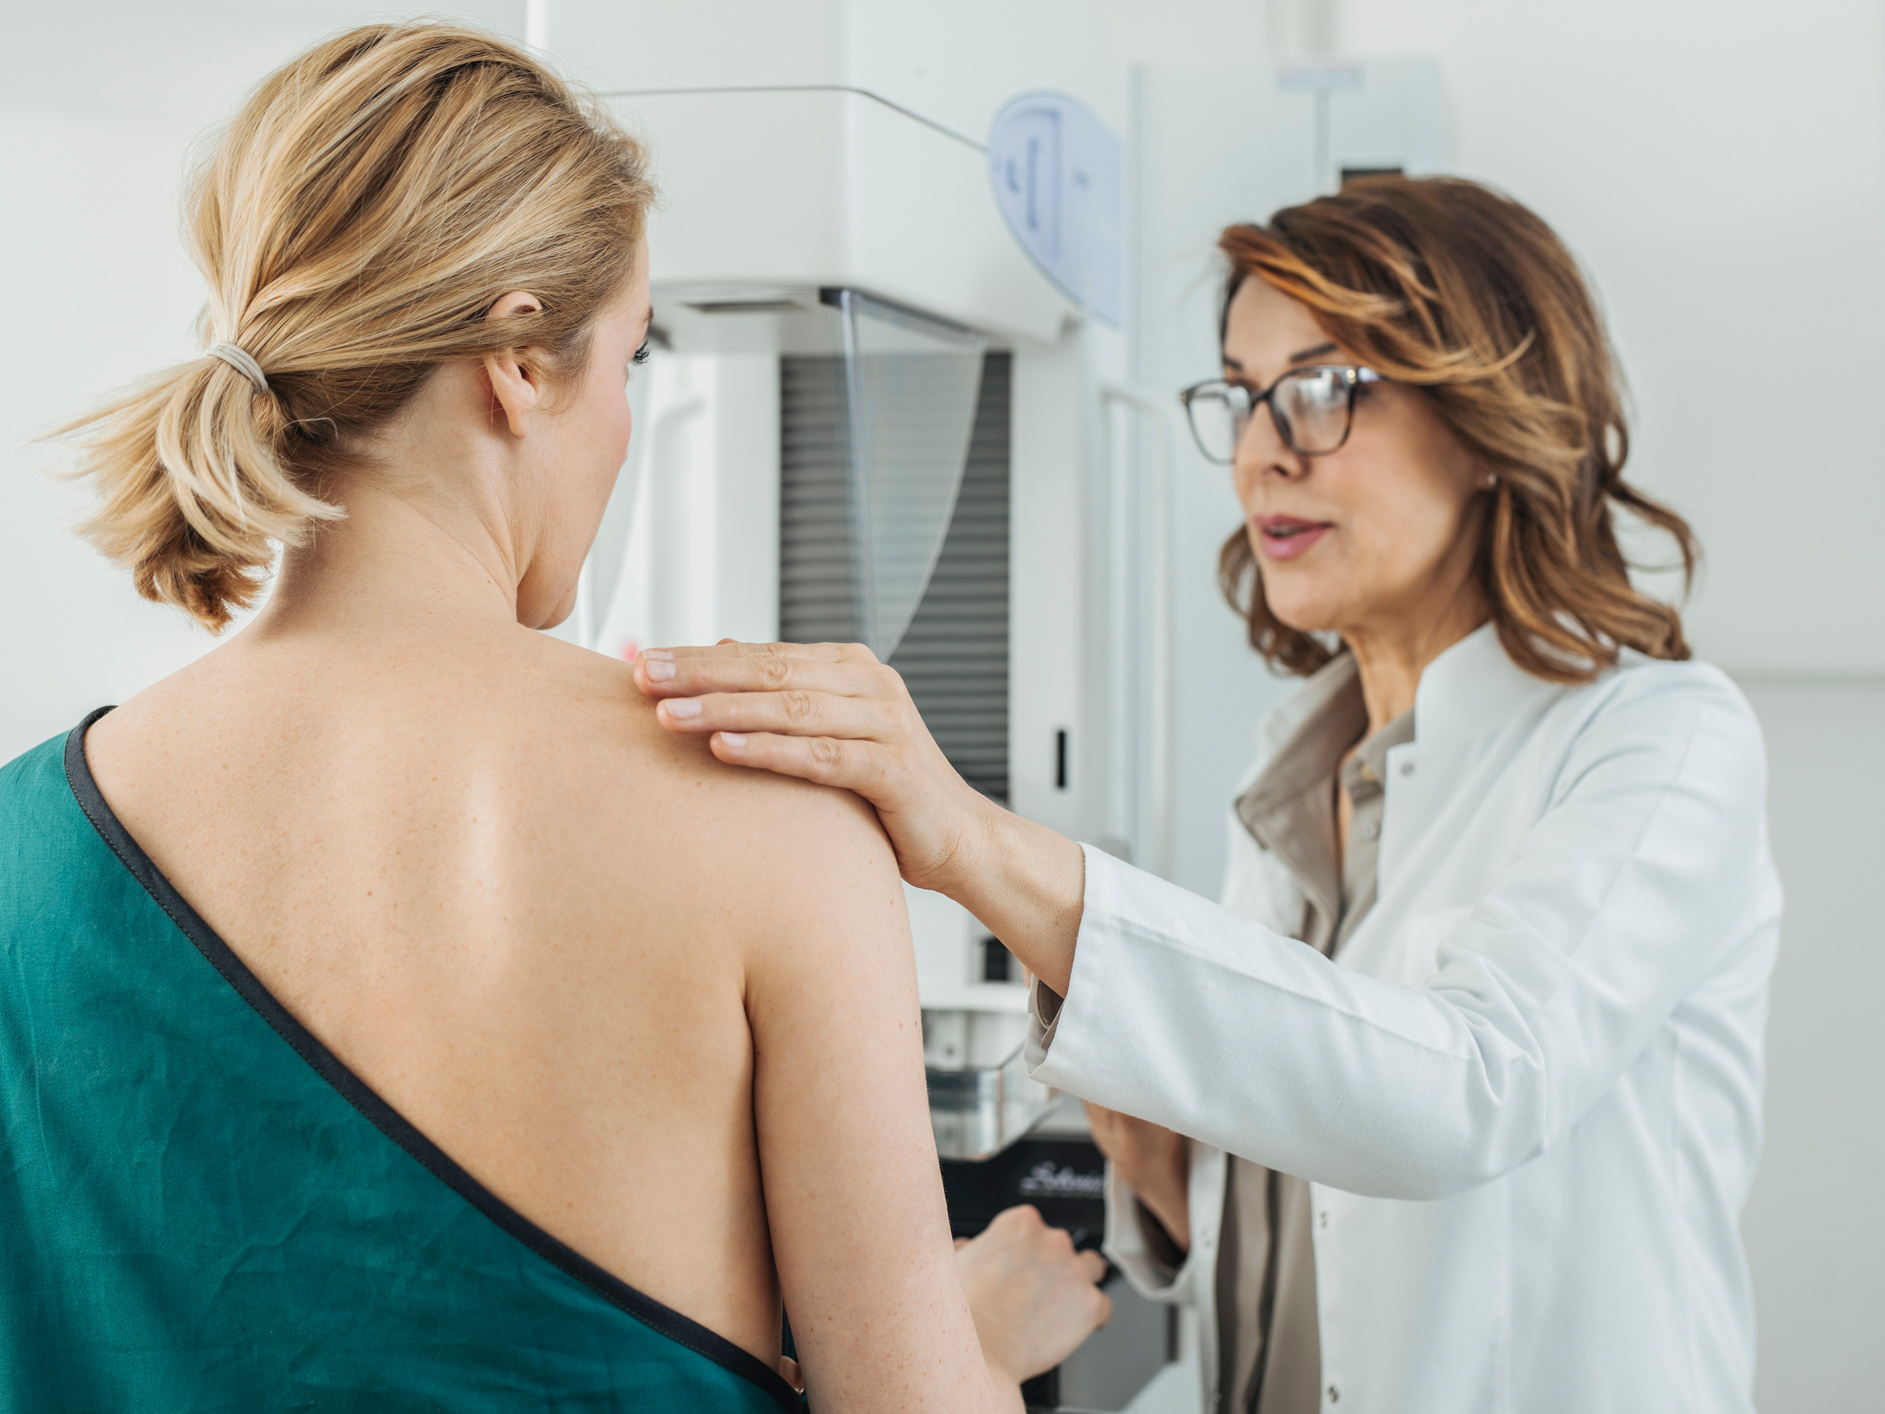 """3-D mammography casts doubt on """"end date"""" for cancer screening of older women"""